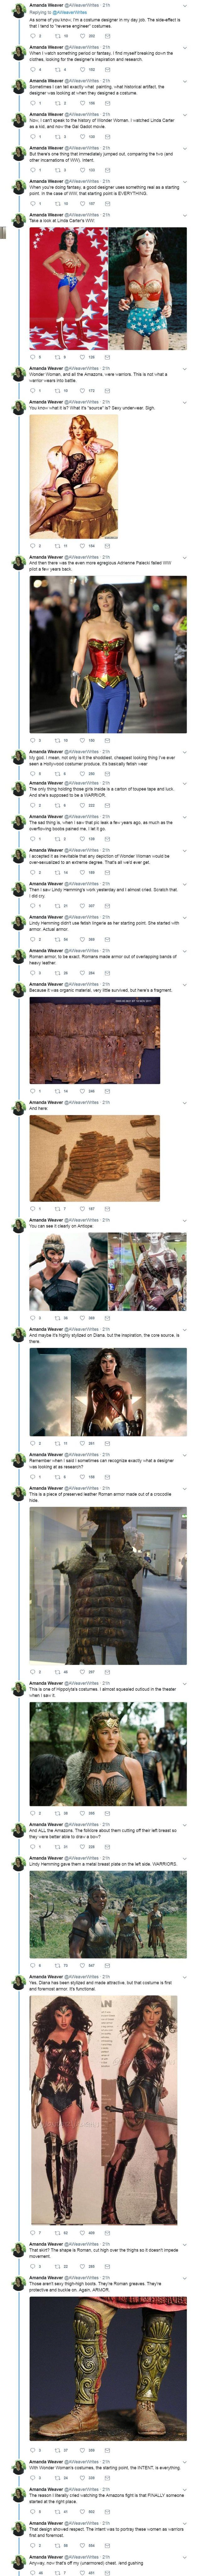 The costumes in Wonder Woman—thoughts from a costume designer <-- Idk if you've seen the new Wonder Woman movie, but i love this. I might be lukewarm about the movie's story, but this and the freaking amazing fight scenes are awesome. and this totally fed my nerdy side